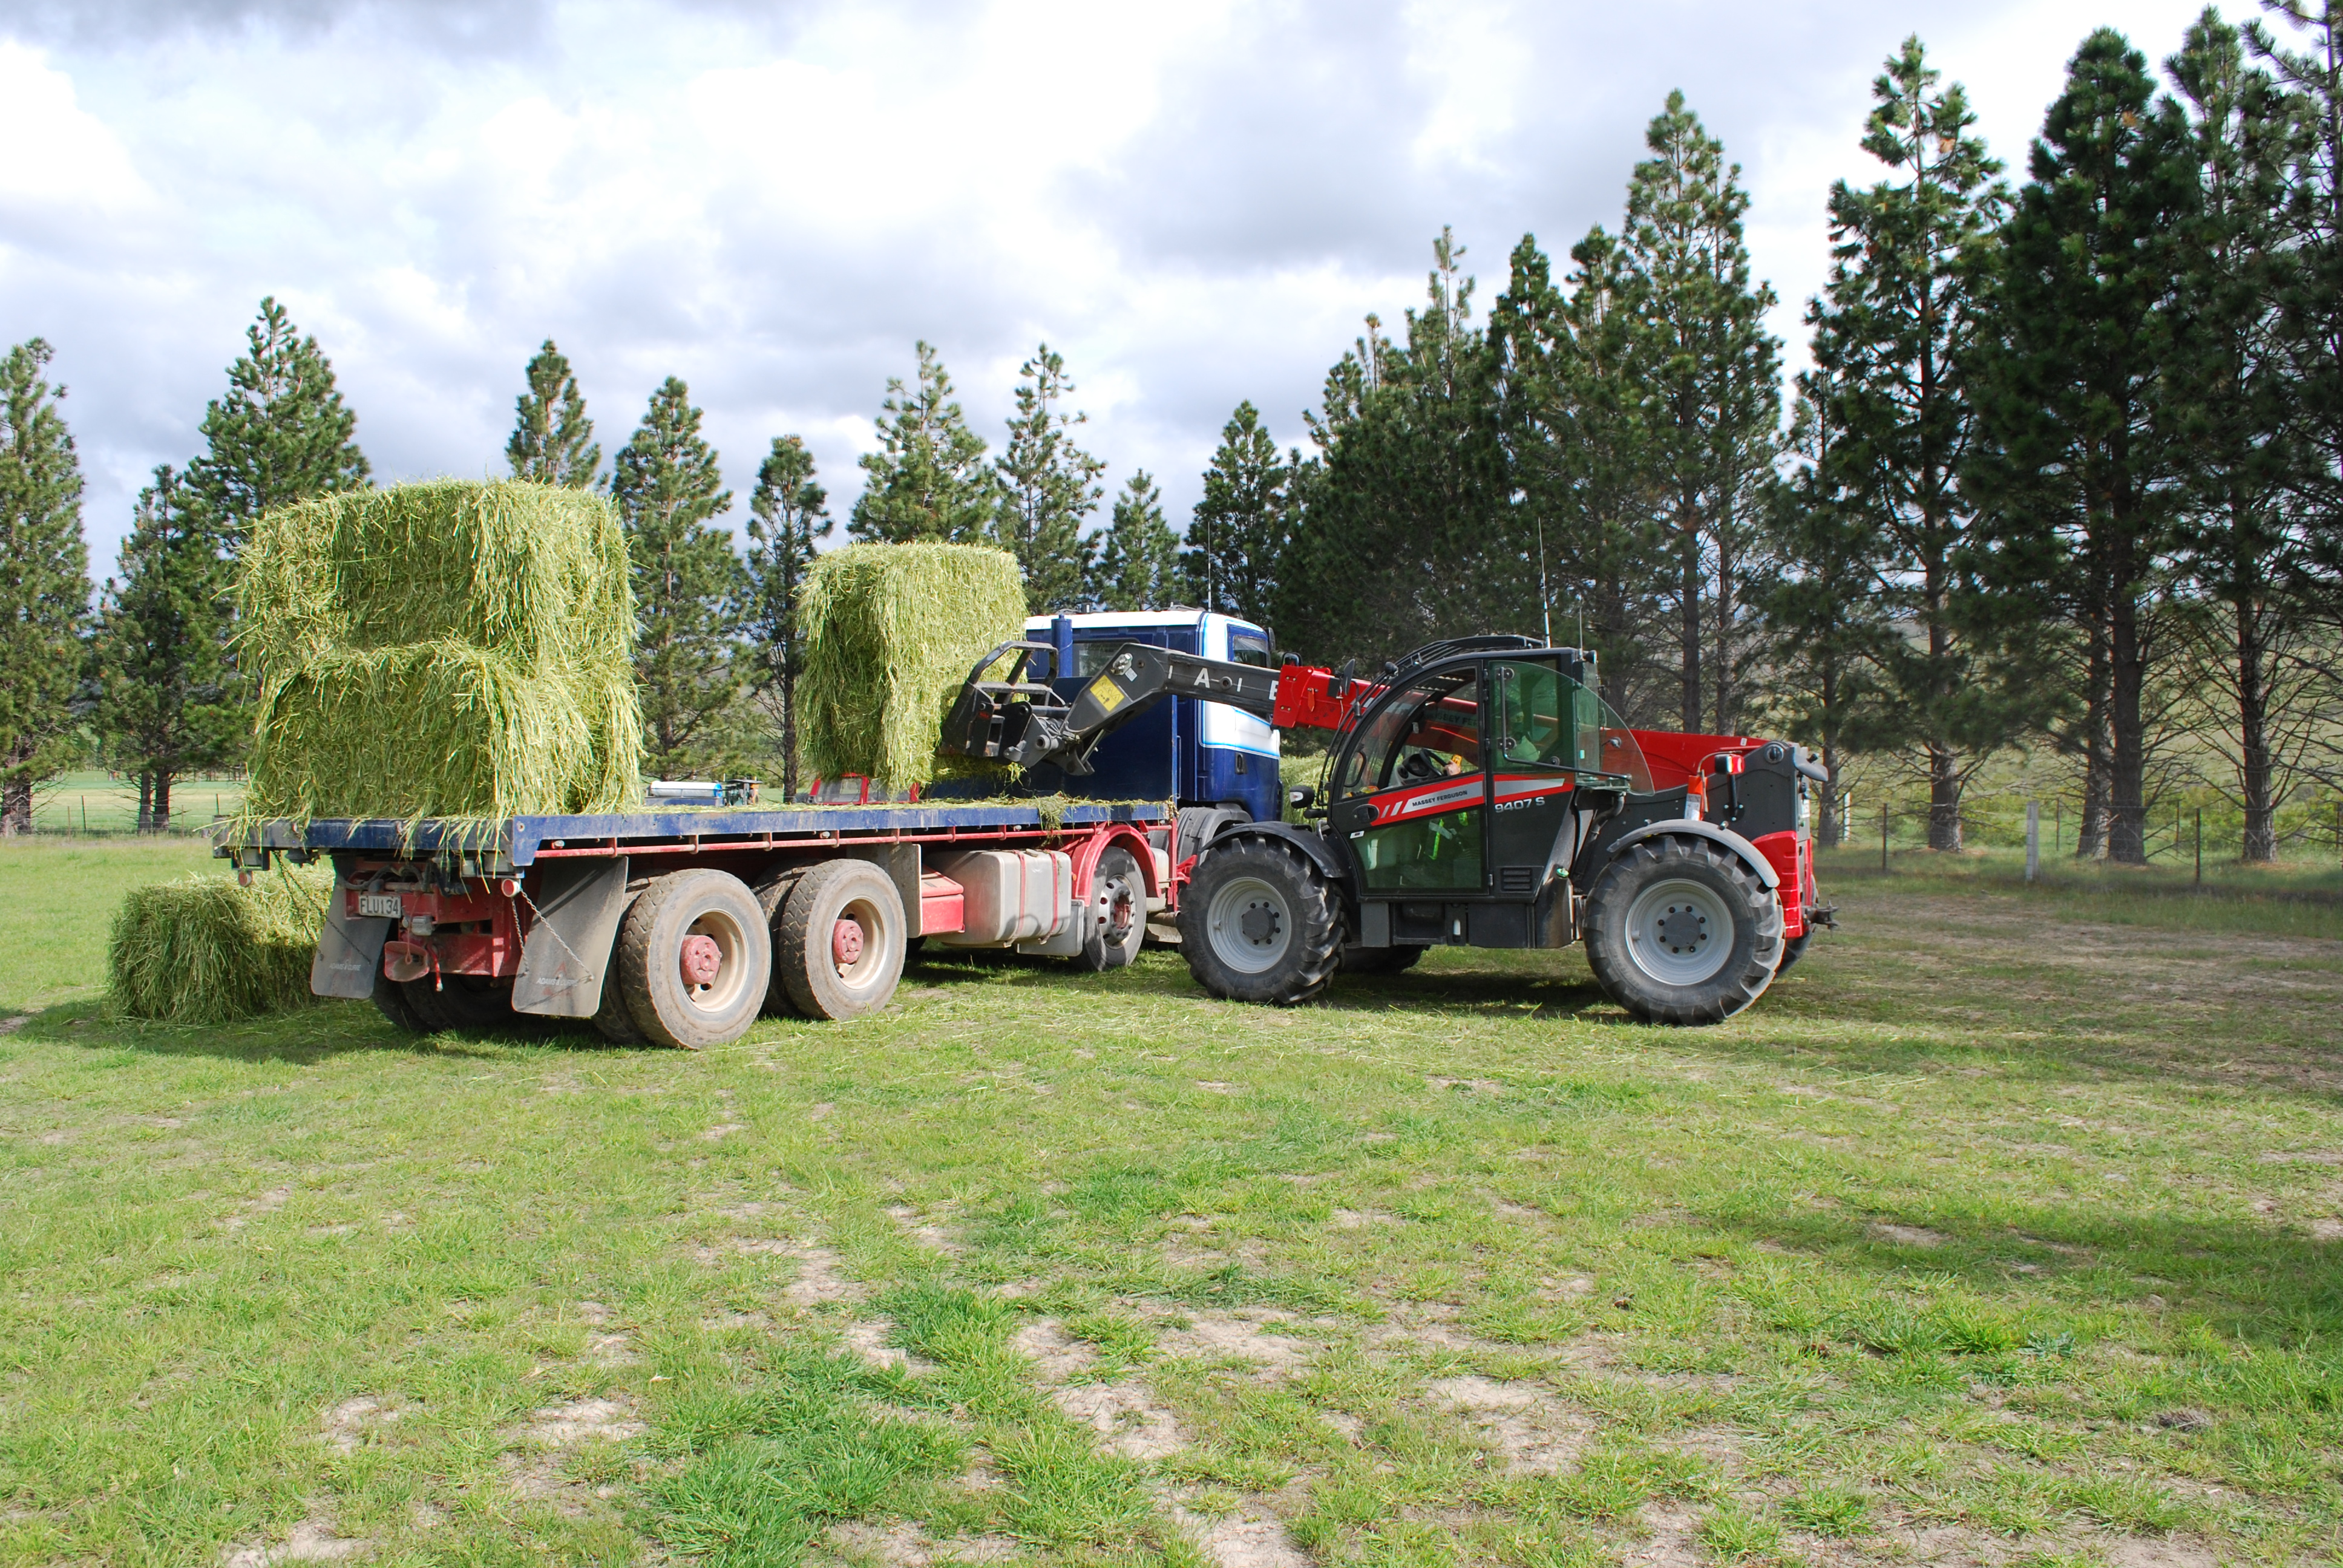 Massey Ferguson Combination Provides High-performance and Hassle-Free Operation for Hay Contractor.